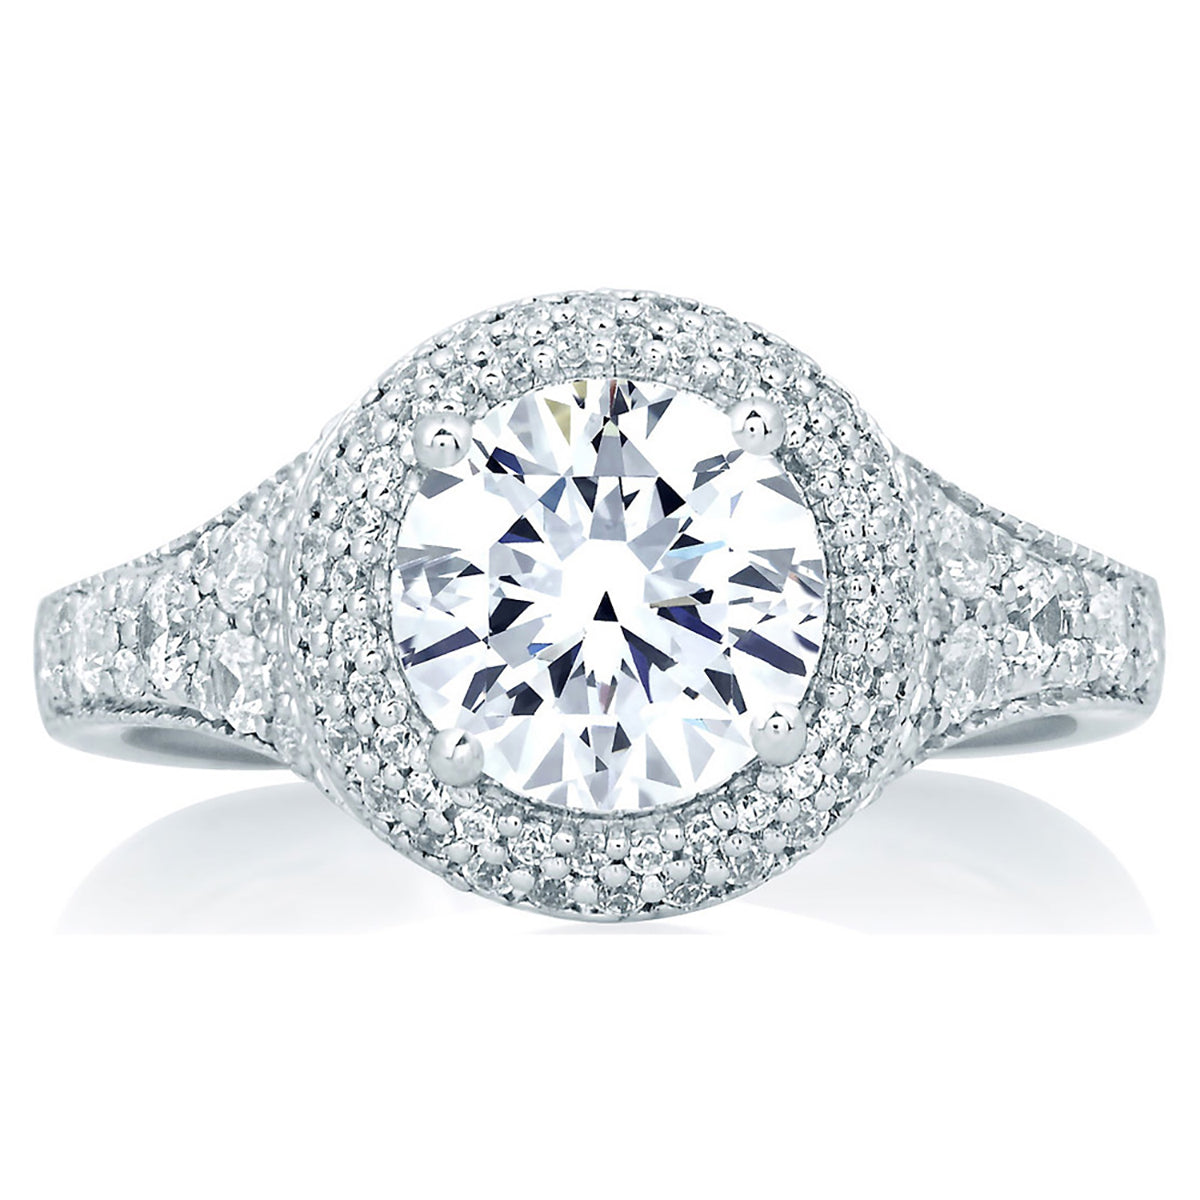 A.Jaffe Pave Deco Halo with Round Center Diamond Engagement Ring MES640/214